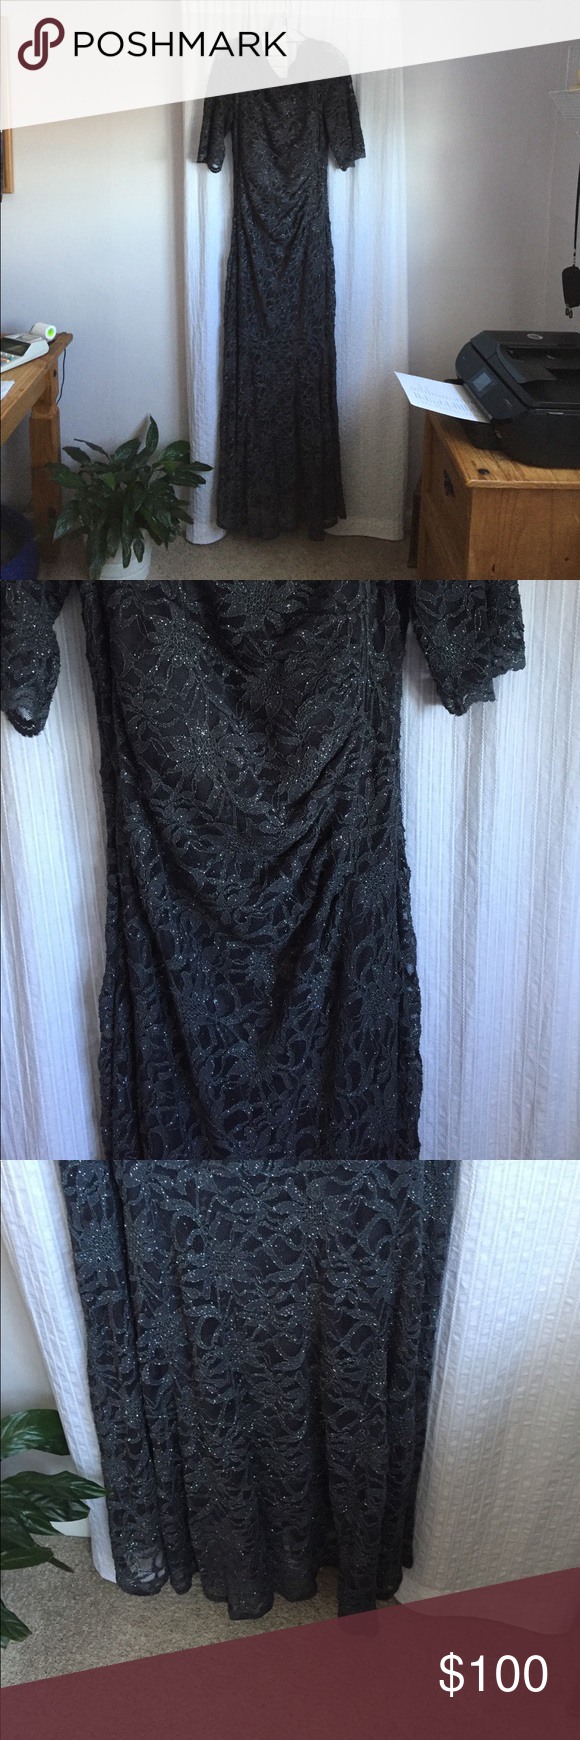 e2225f9f246d Floor length mermaid silhouette. Fully lined. Designed by Nightway. Nightway  Dresses. Special occasion charcoal gray dress, size 16 All over glitter lace  ...